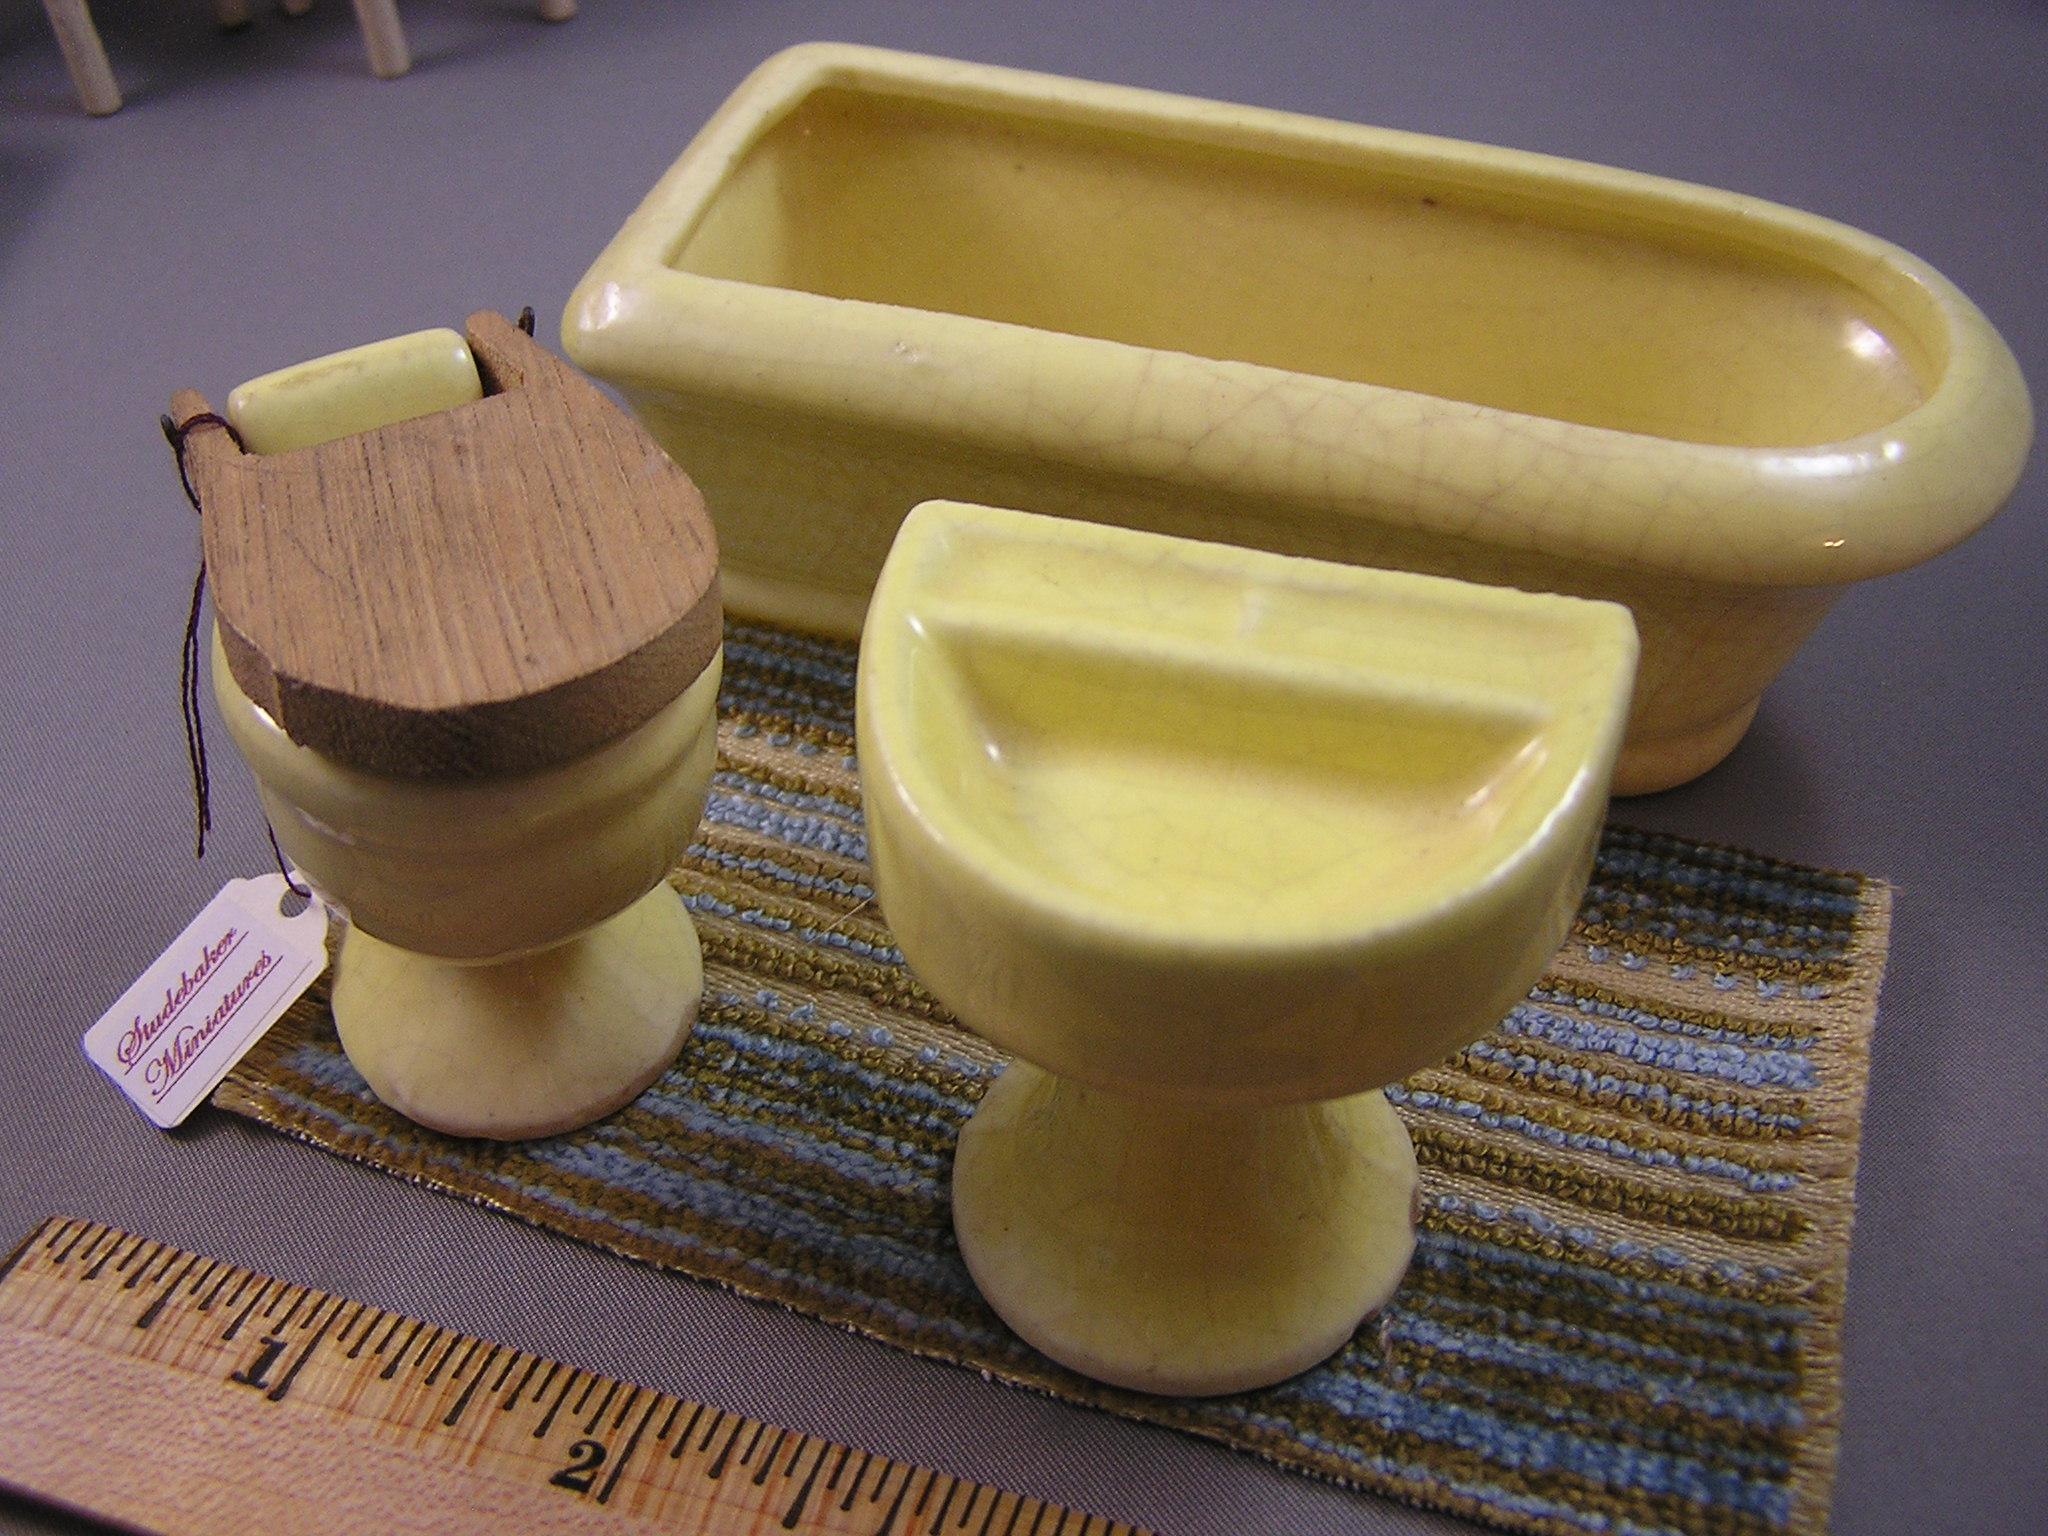 Yellow Porcelain Bathroom Set - Click Image to Close